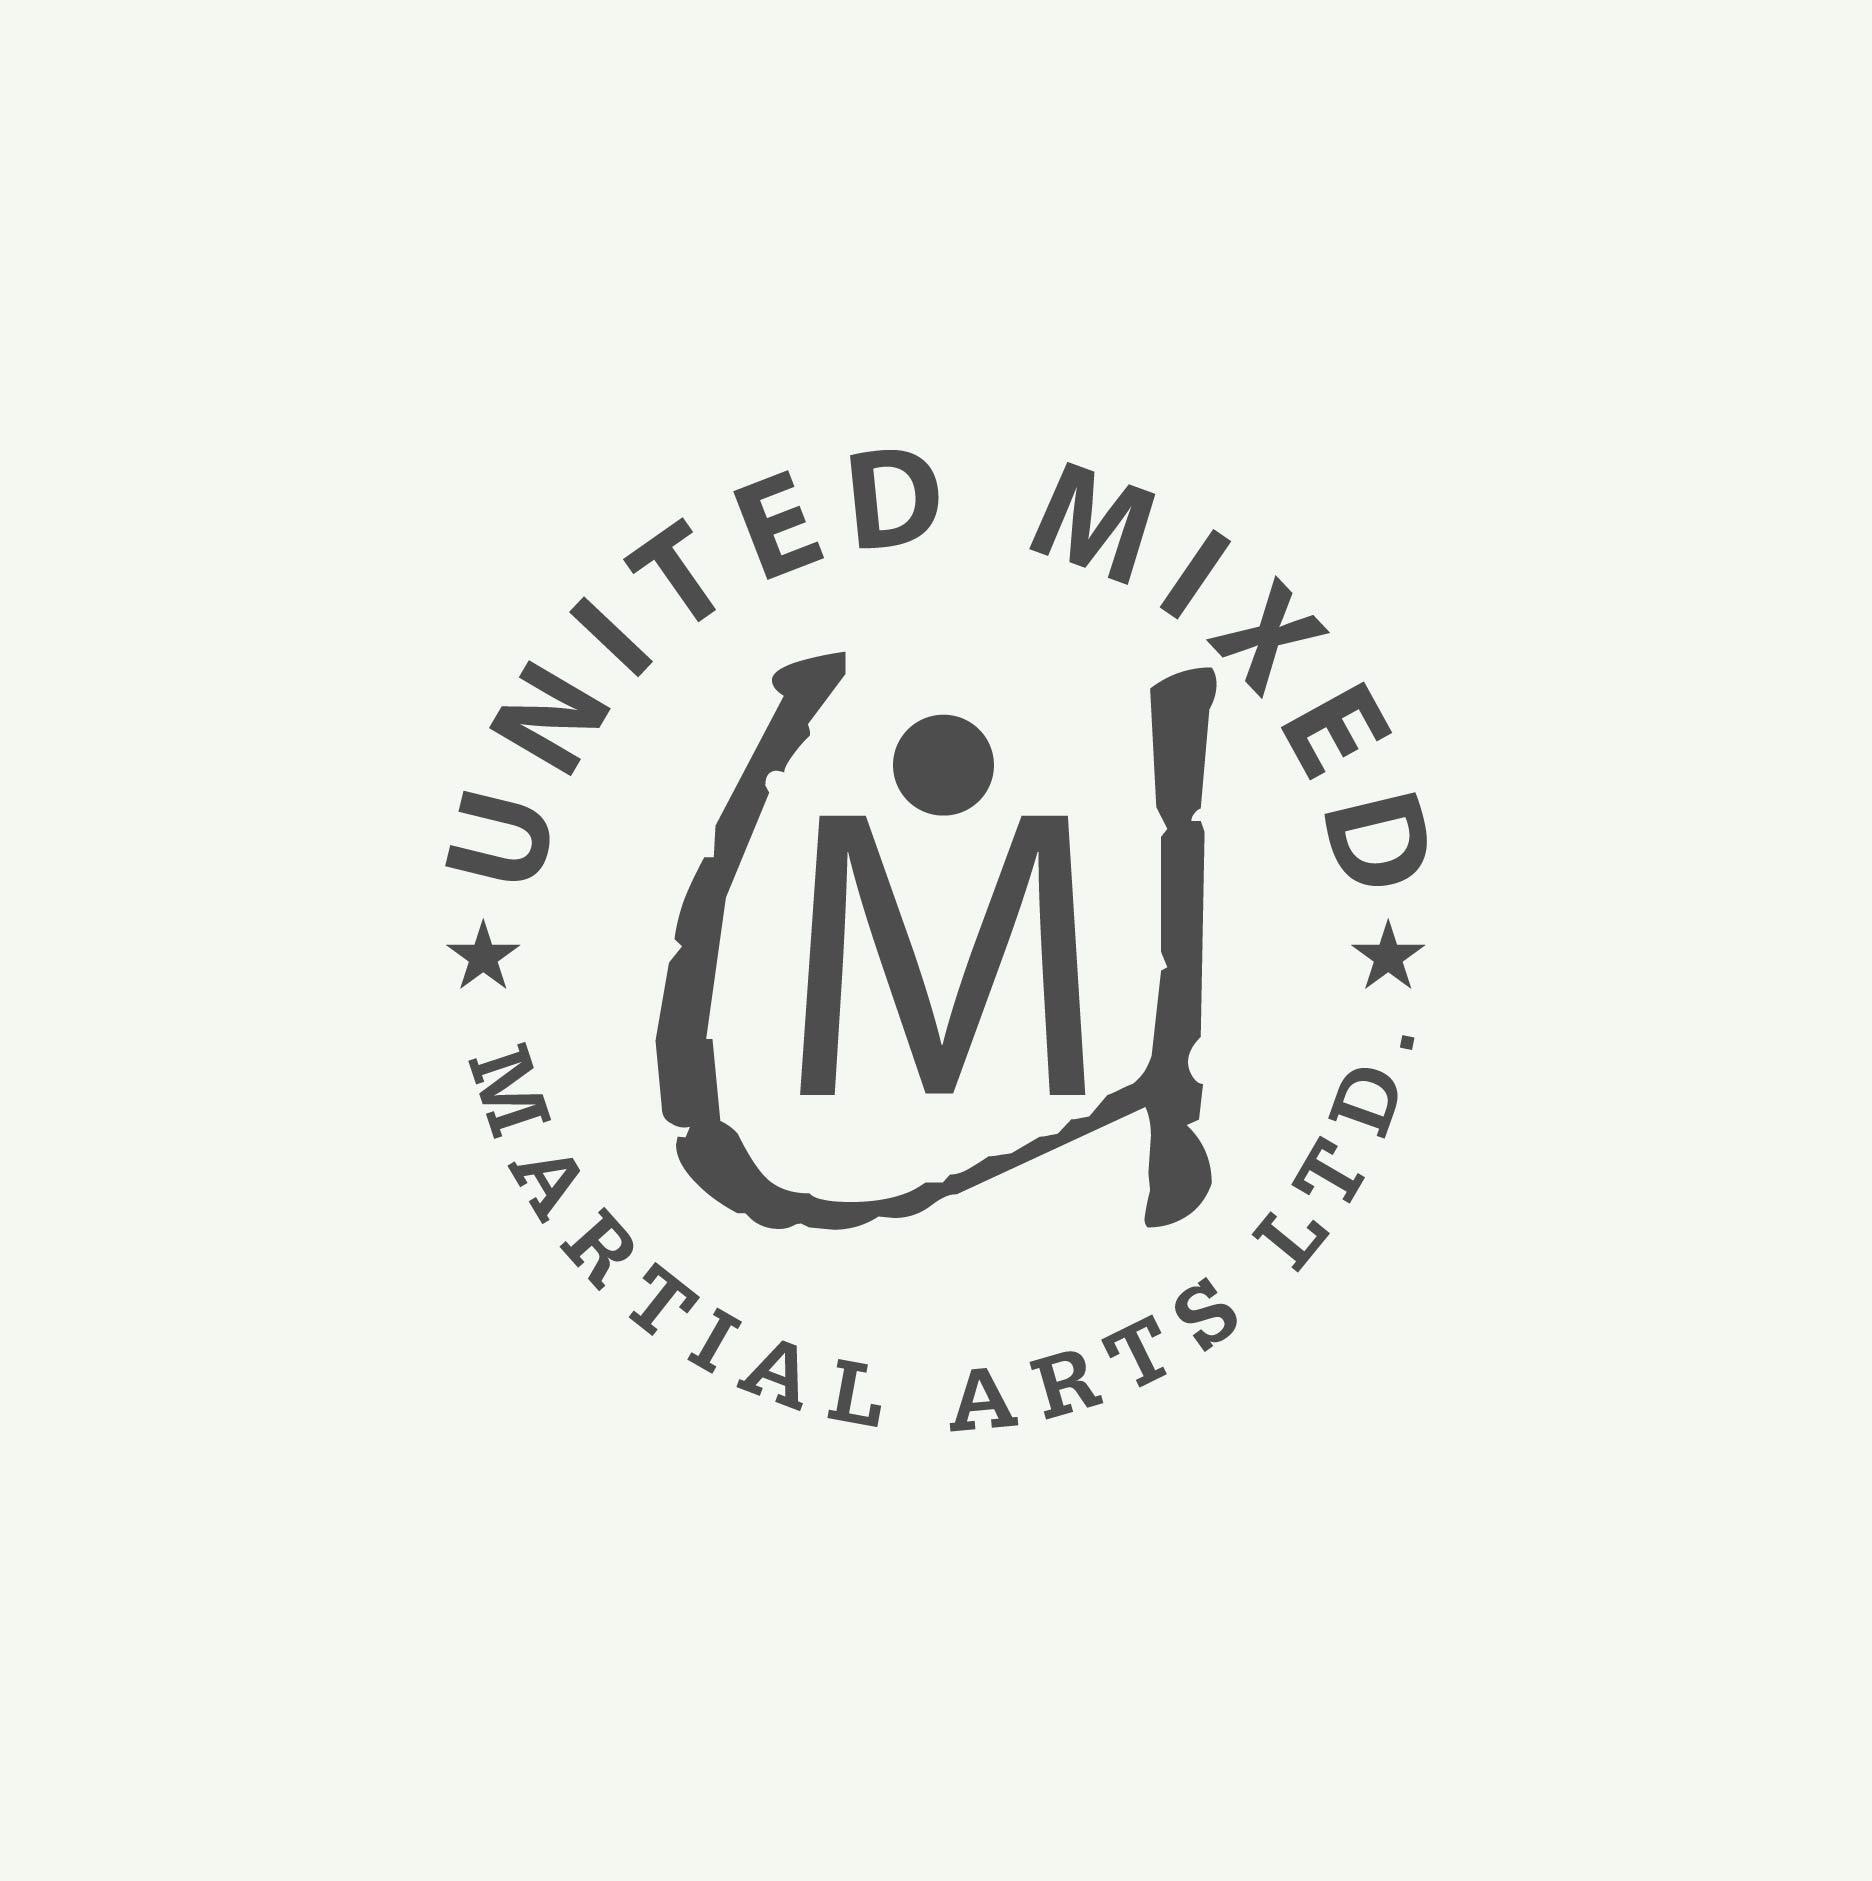 Logo Design by Batter Fly - Entry No. 70 in the Logo Design Contest Artistic Logo Design for United Mixed Martial Arts Ltd..